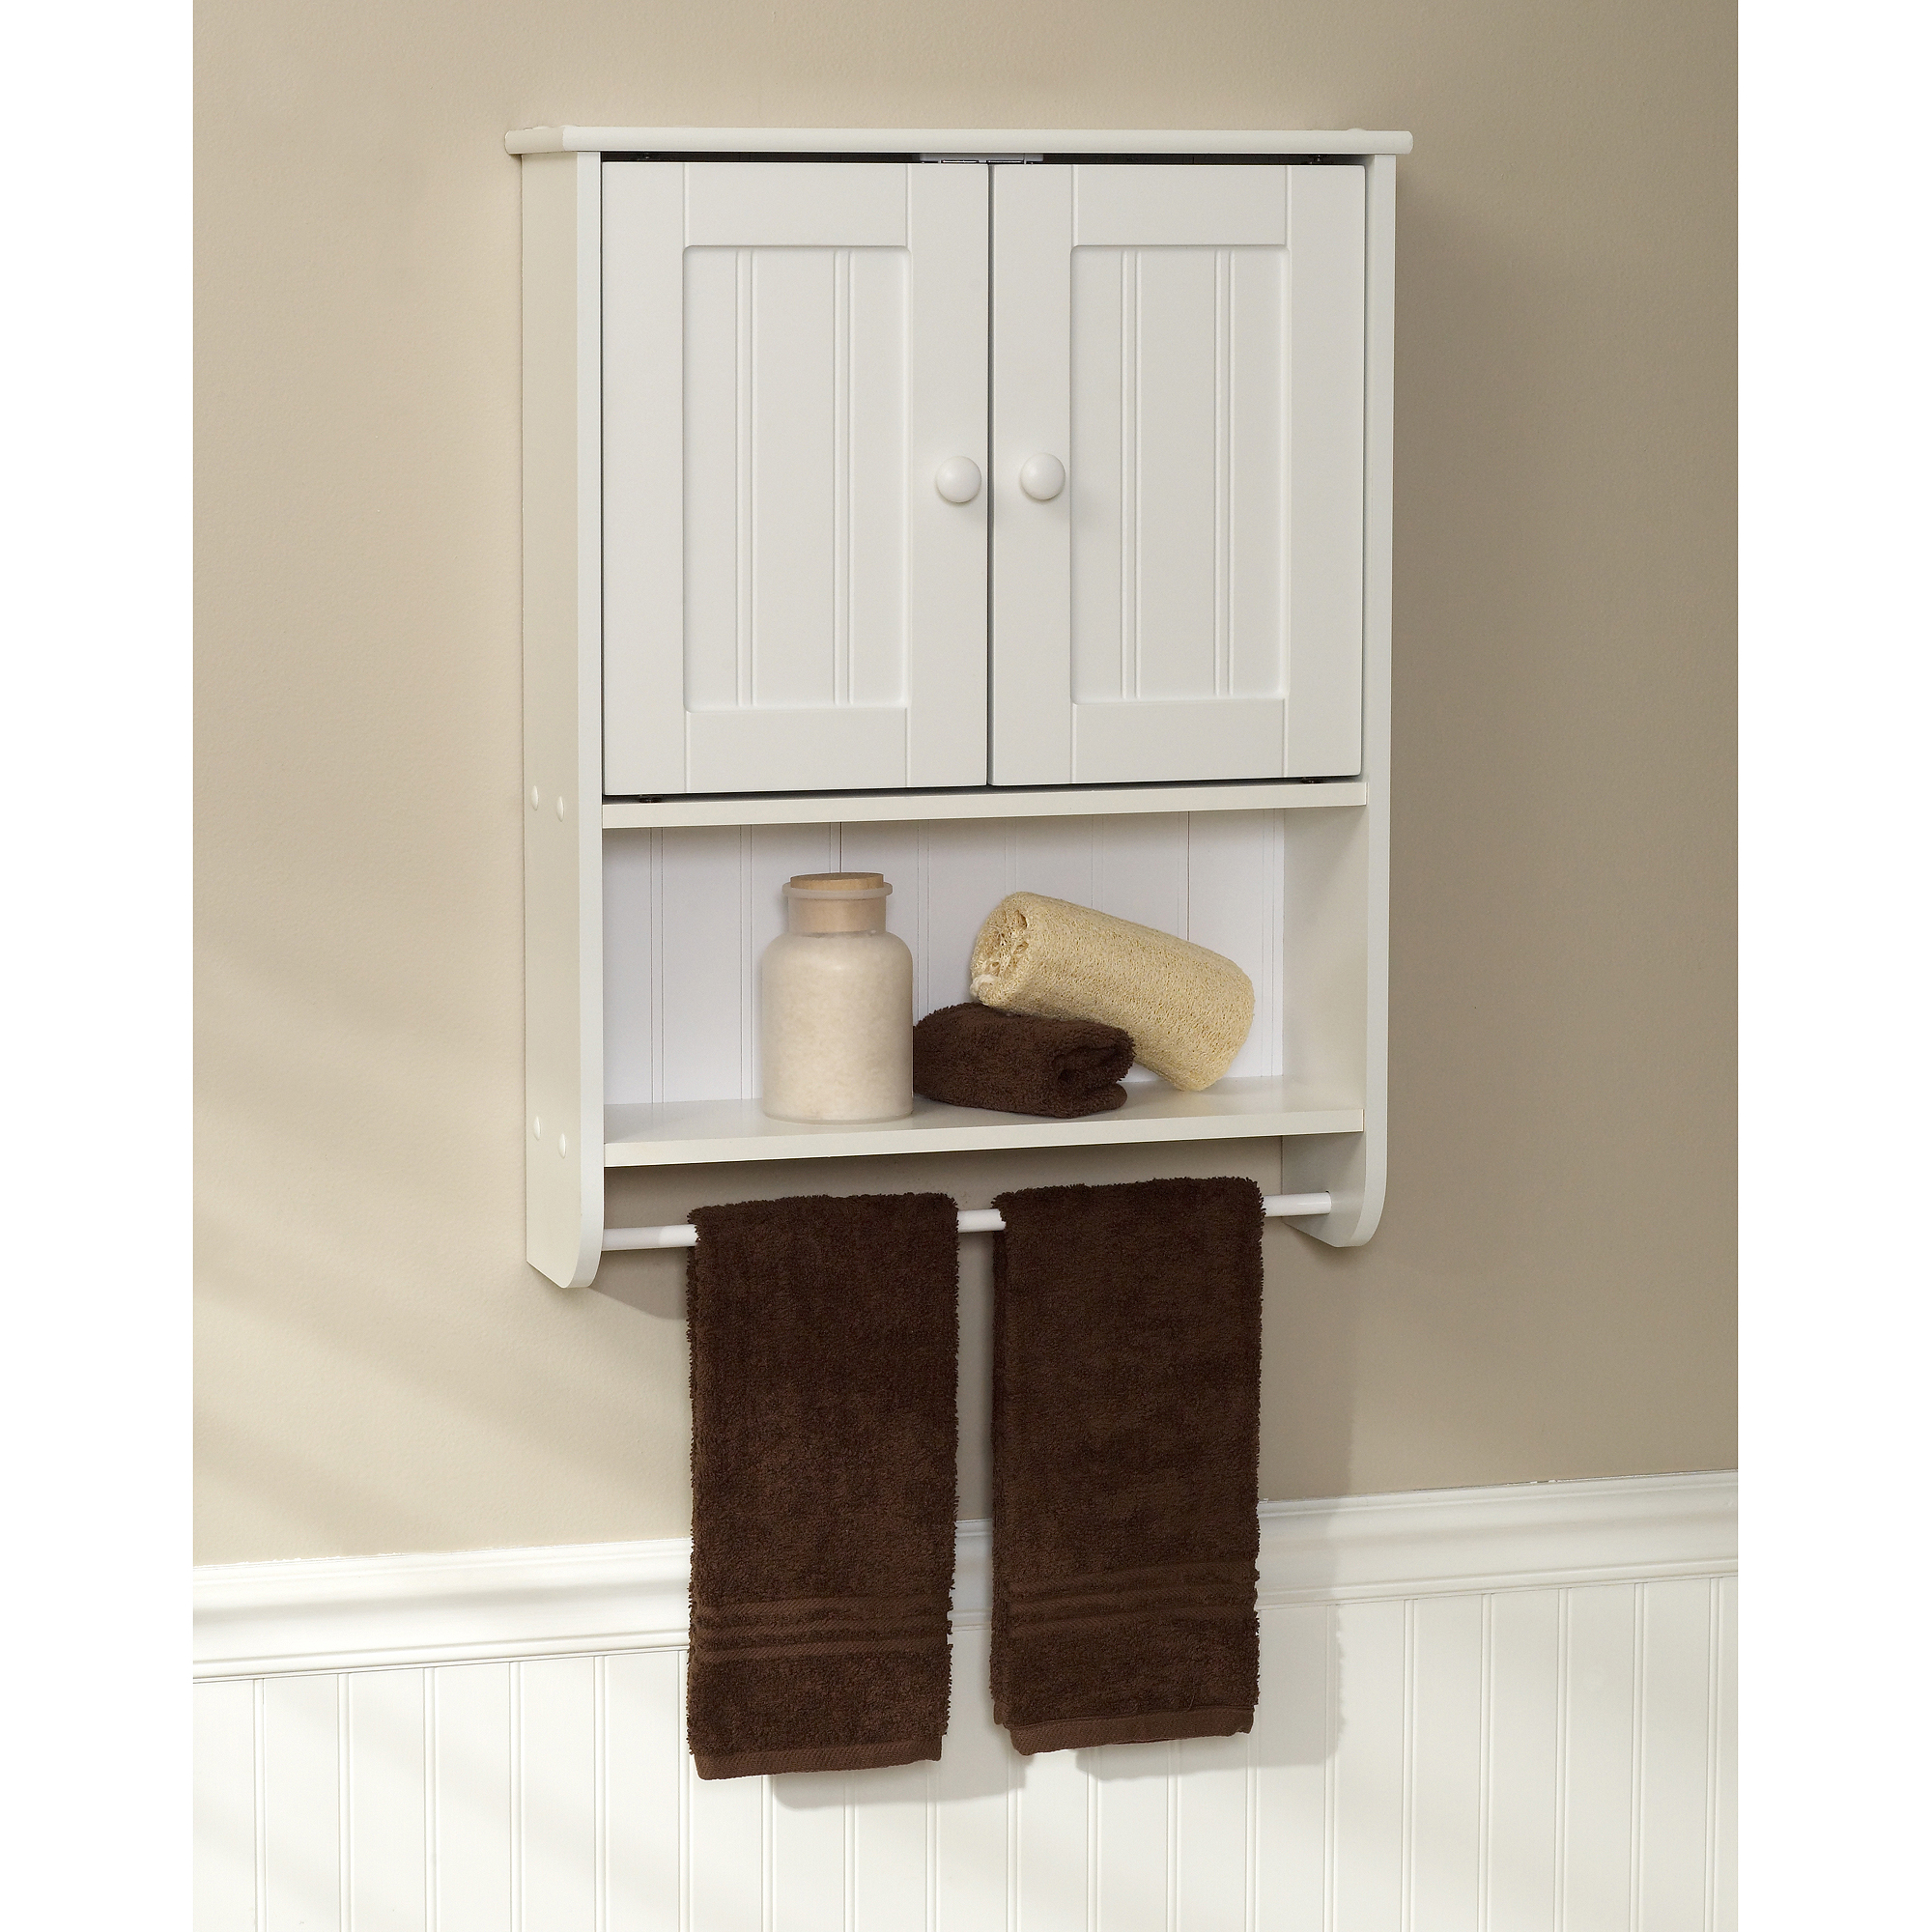 Small bathroom wall cabinet with towel bar for Small bath cabinet